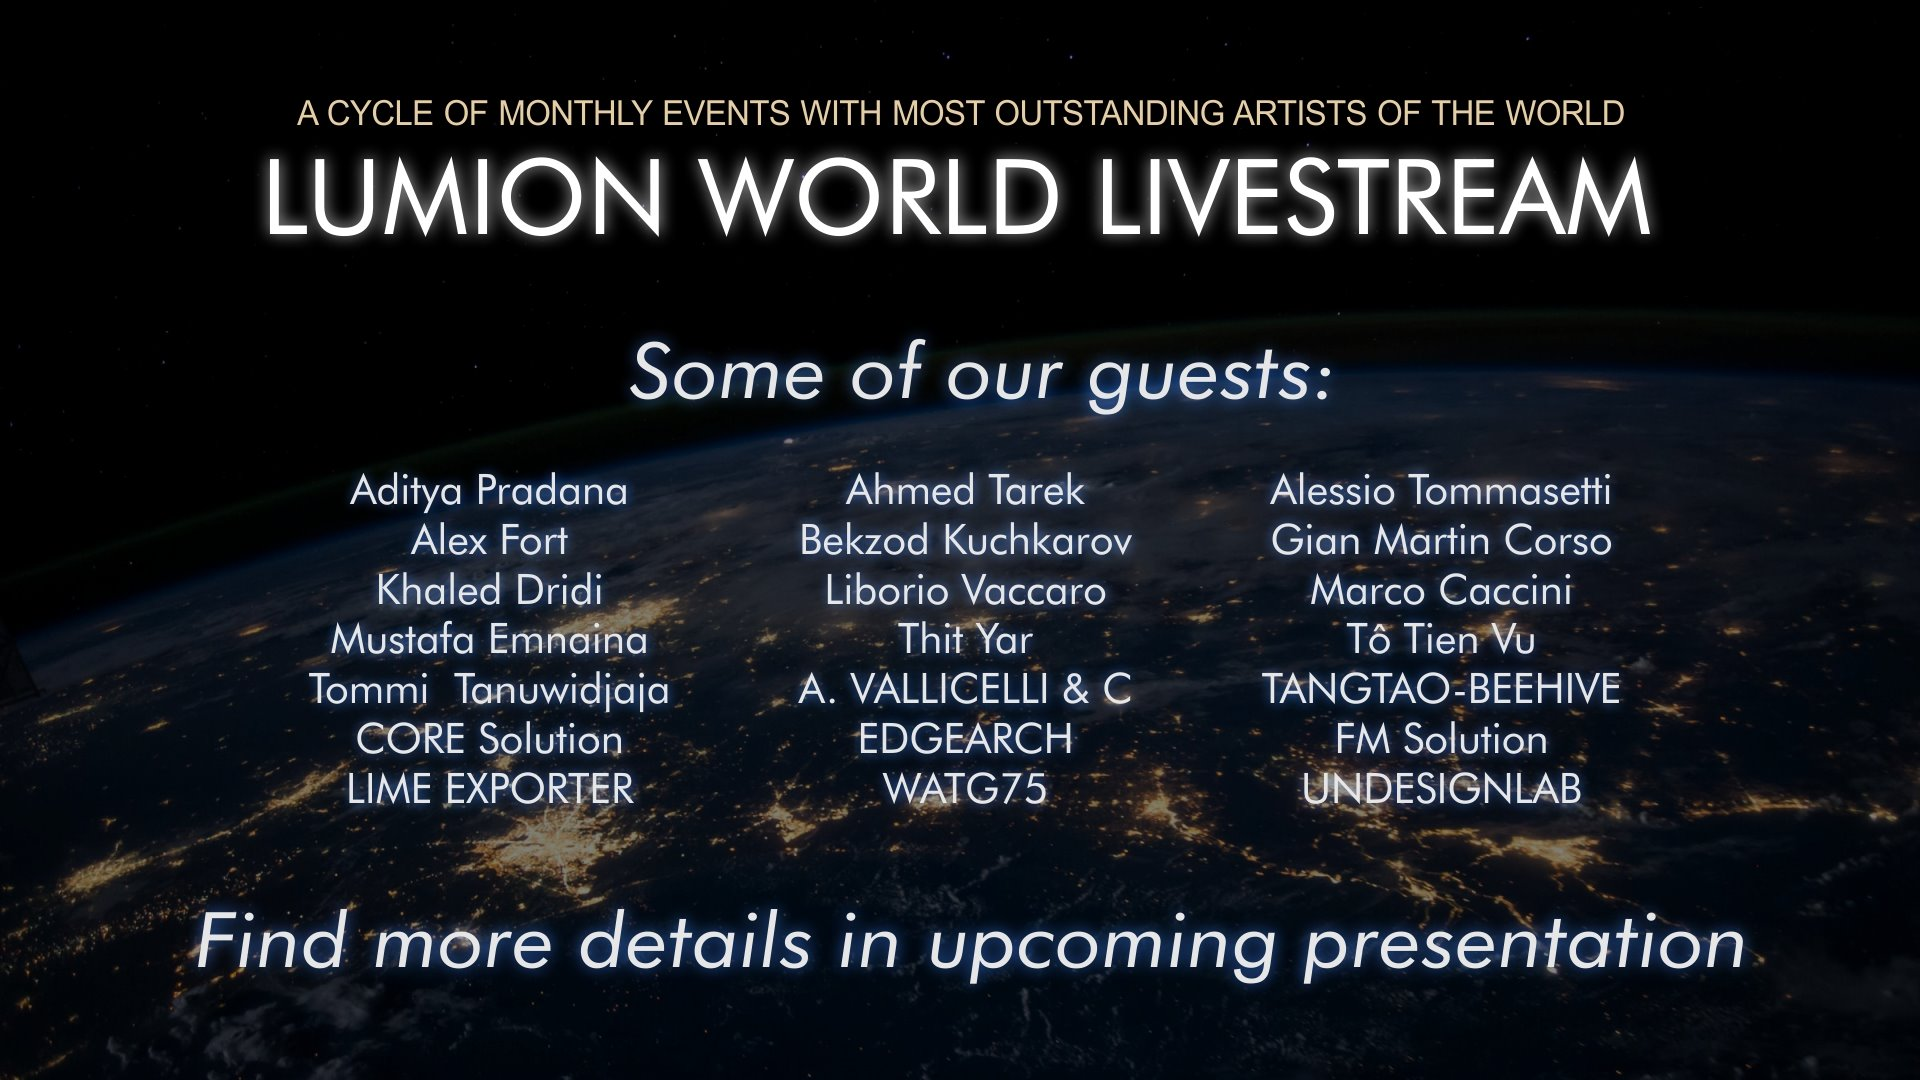 Lumion World LiveStream